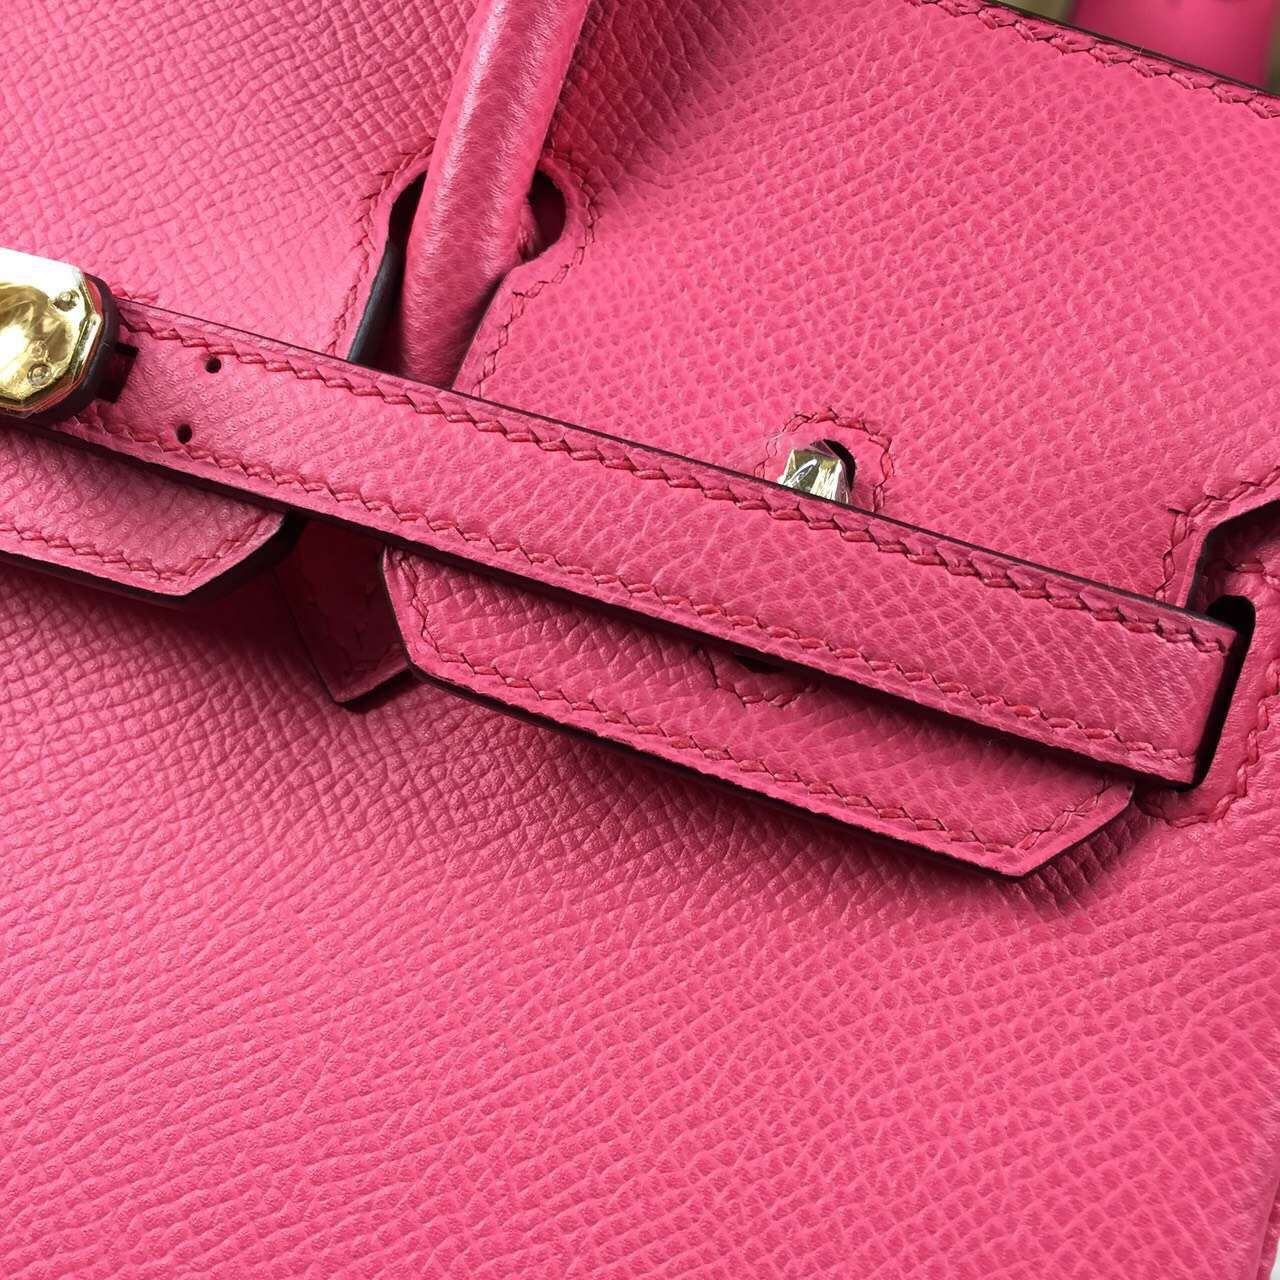 Hand Stitching Hermes 8W Rose Azalee Epsom Leather Birkin Bag25cm